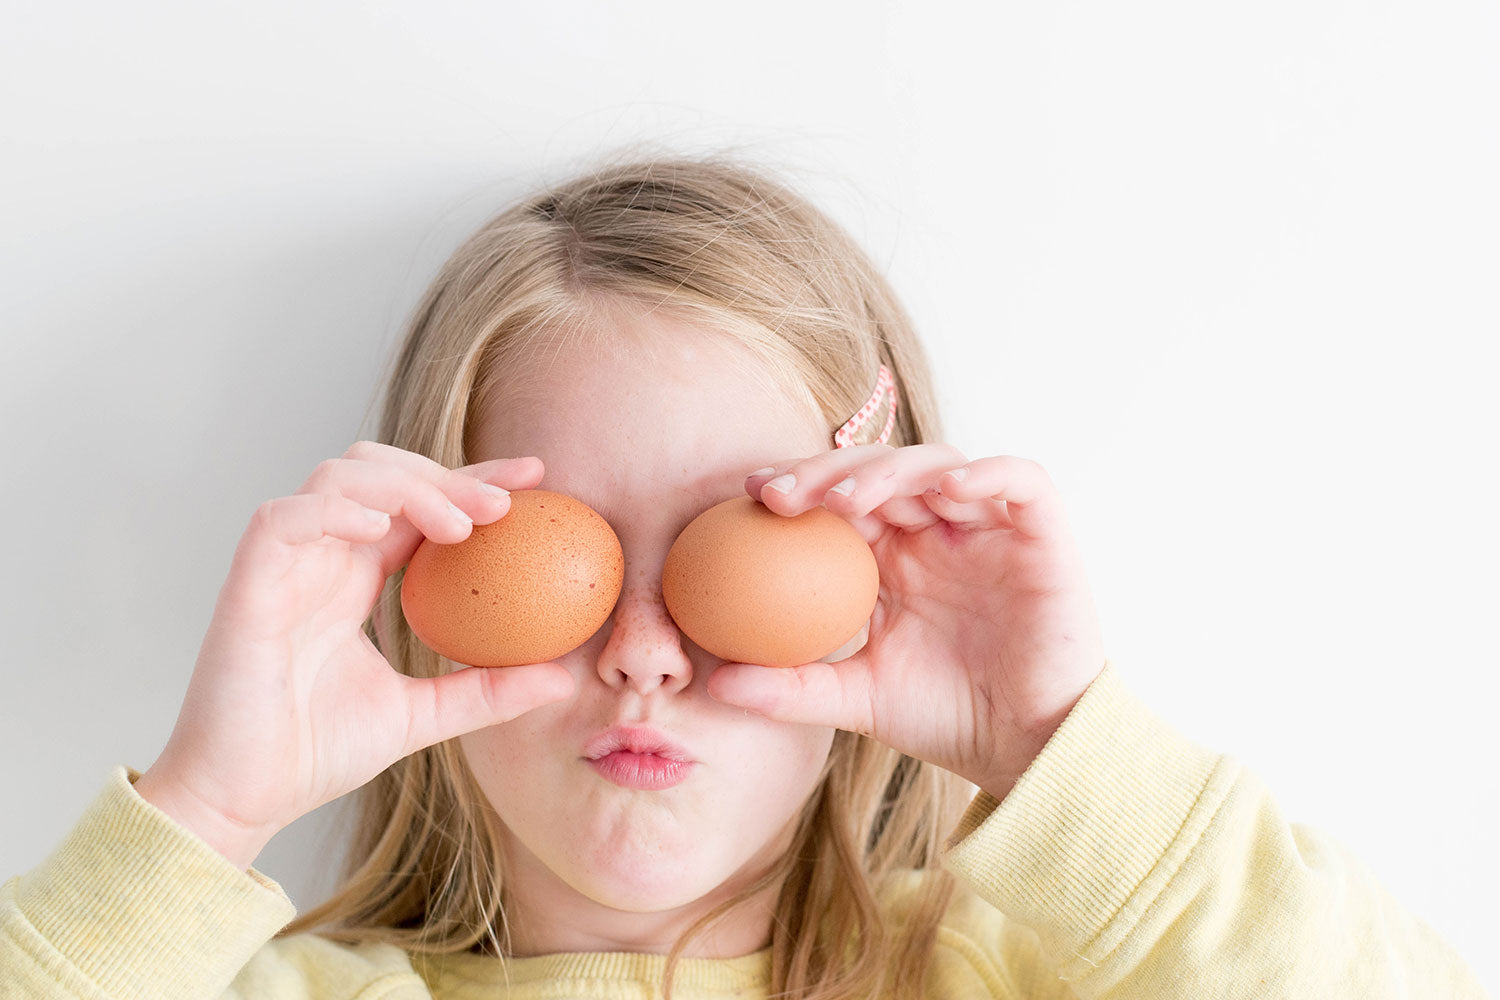 Girl with eggs on her eyes